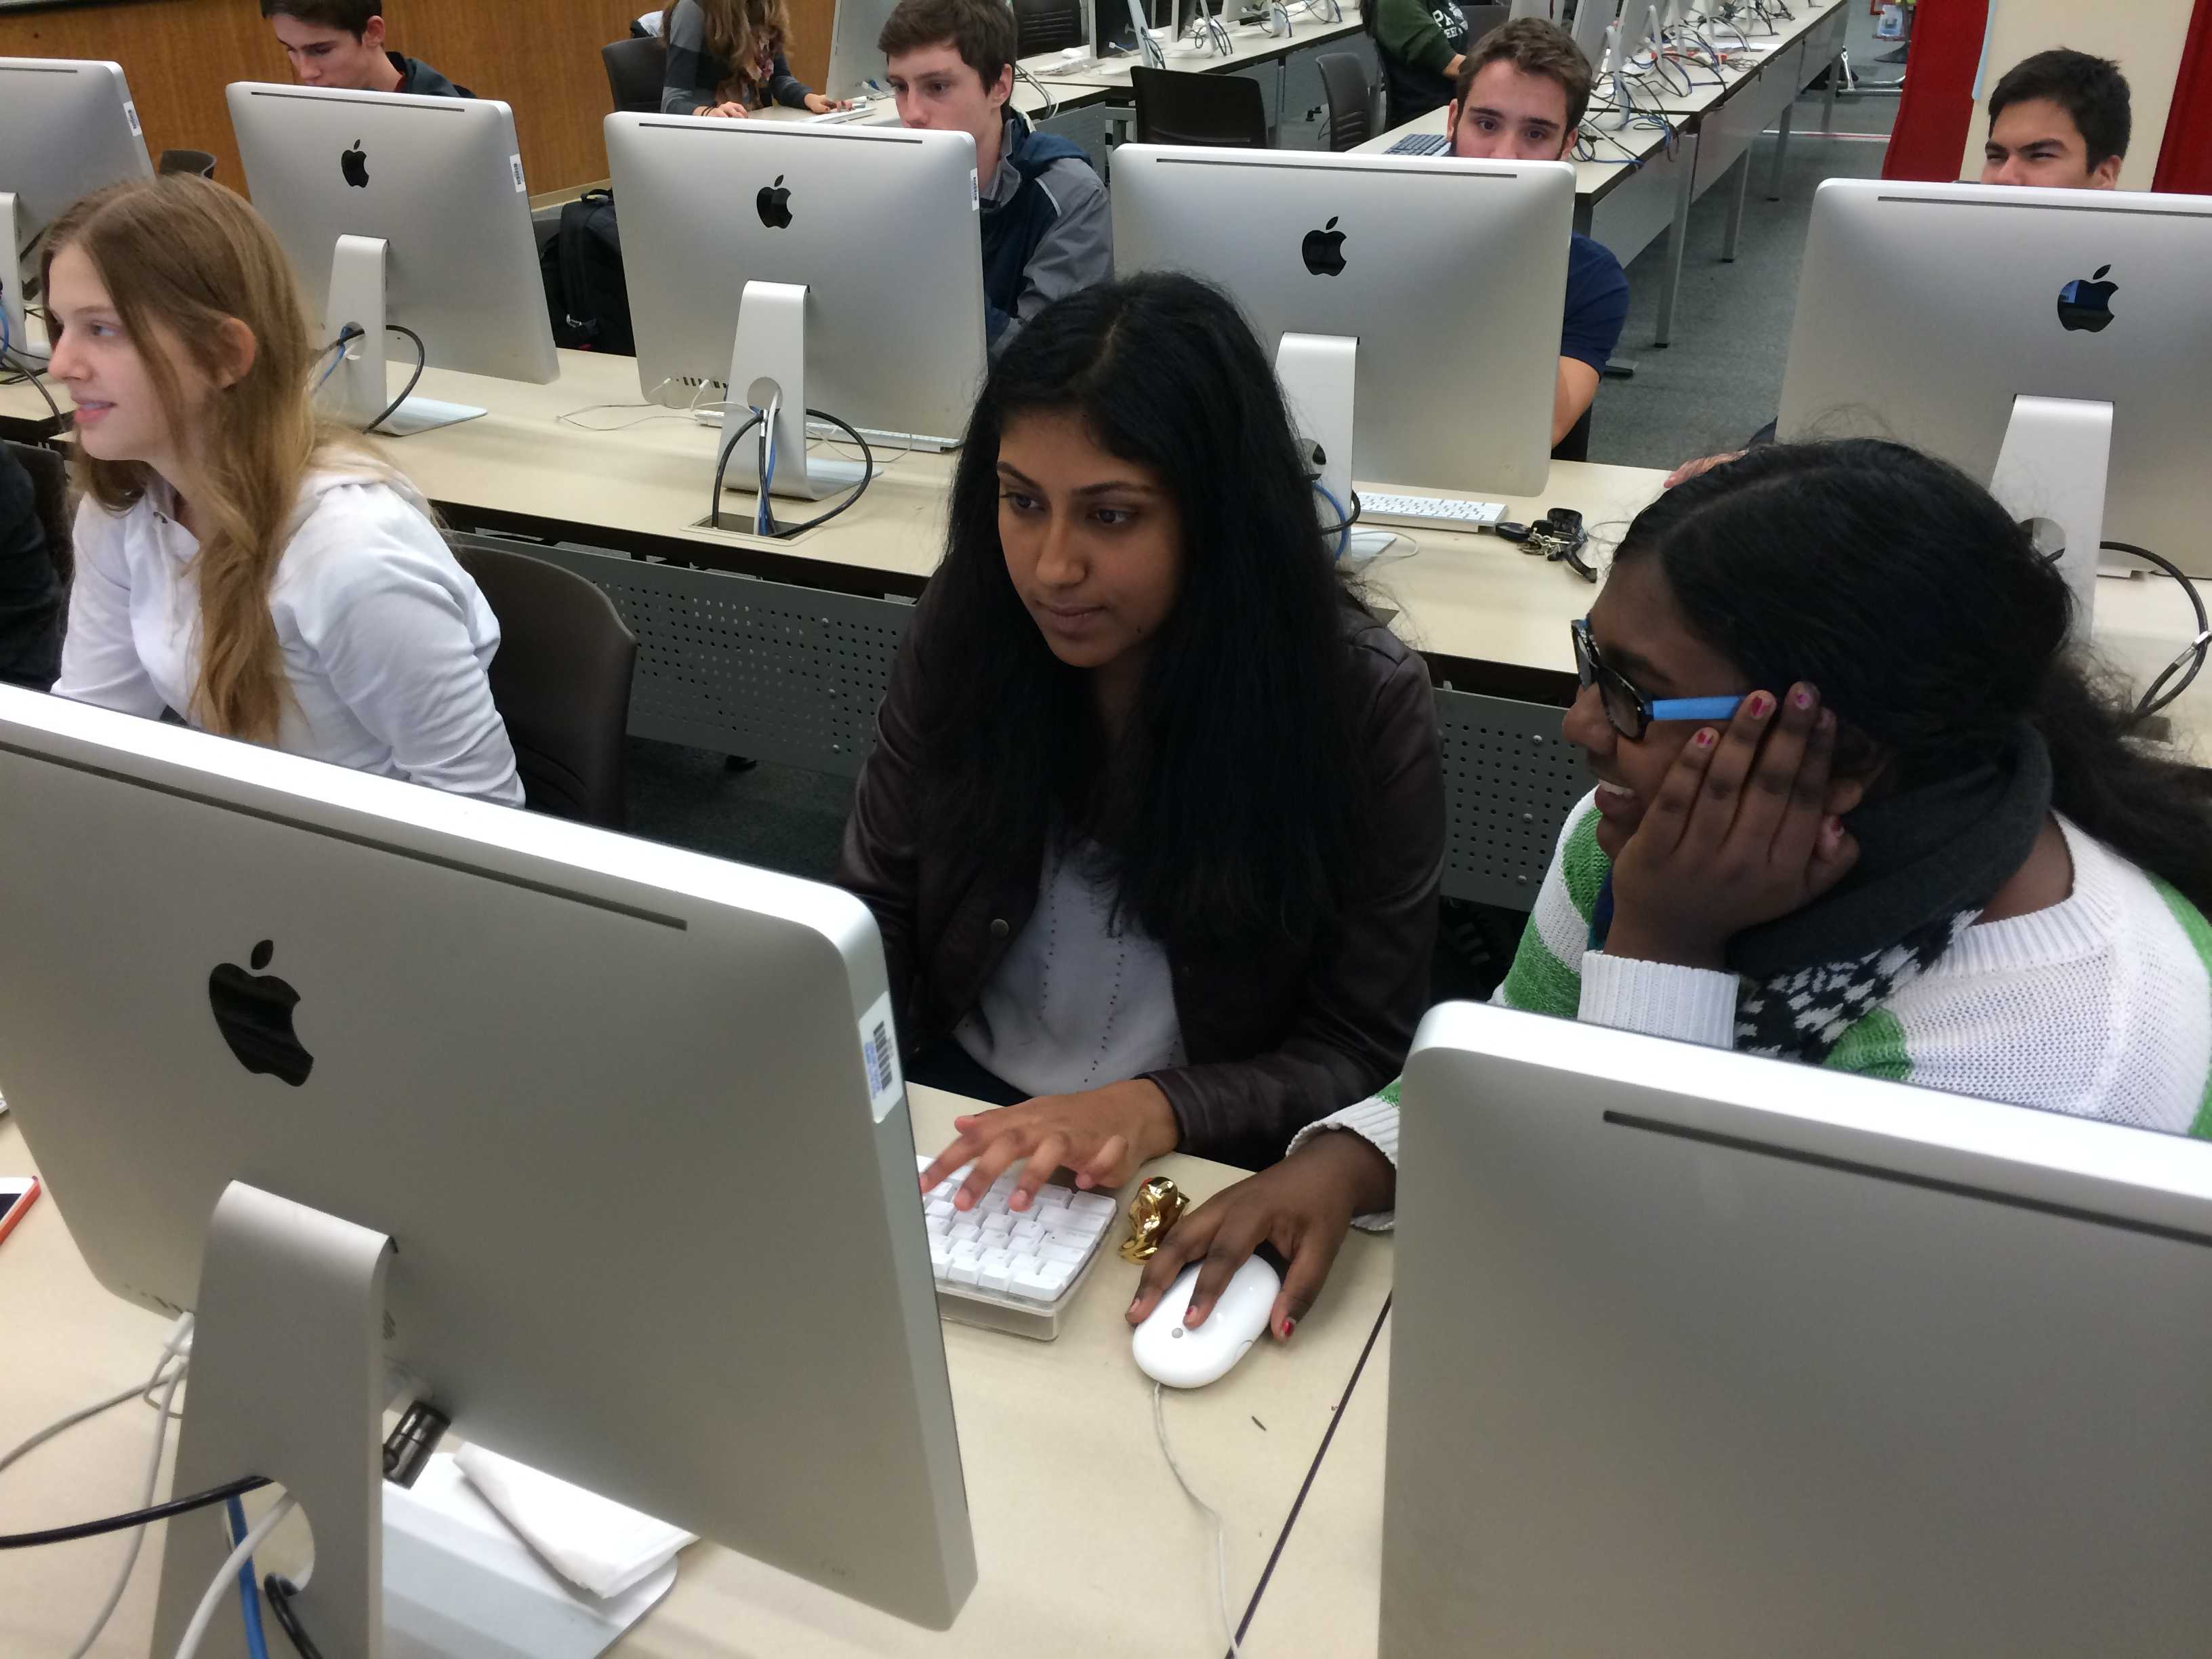 Seniors Jozy Prabhu and Ankita Avadhani scroll through college emails in the Paly Library. Students check college-related emails frequently on campus. Photo by Lydia Barry.